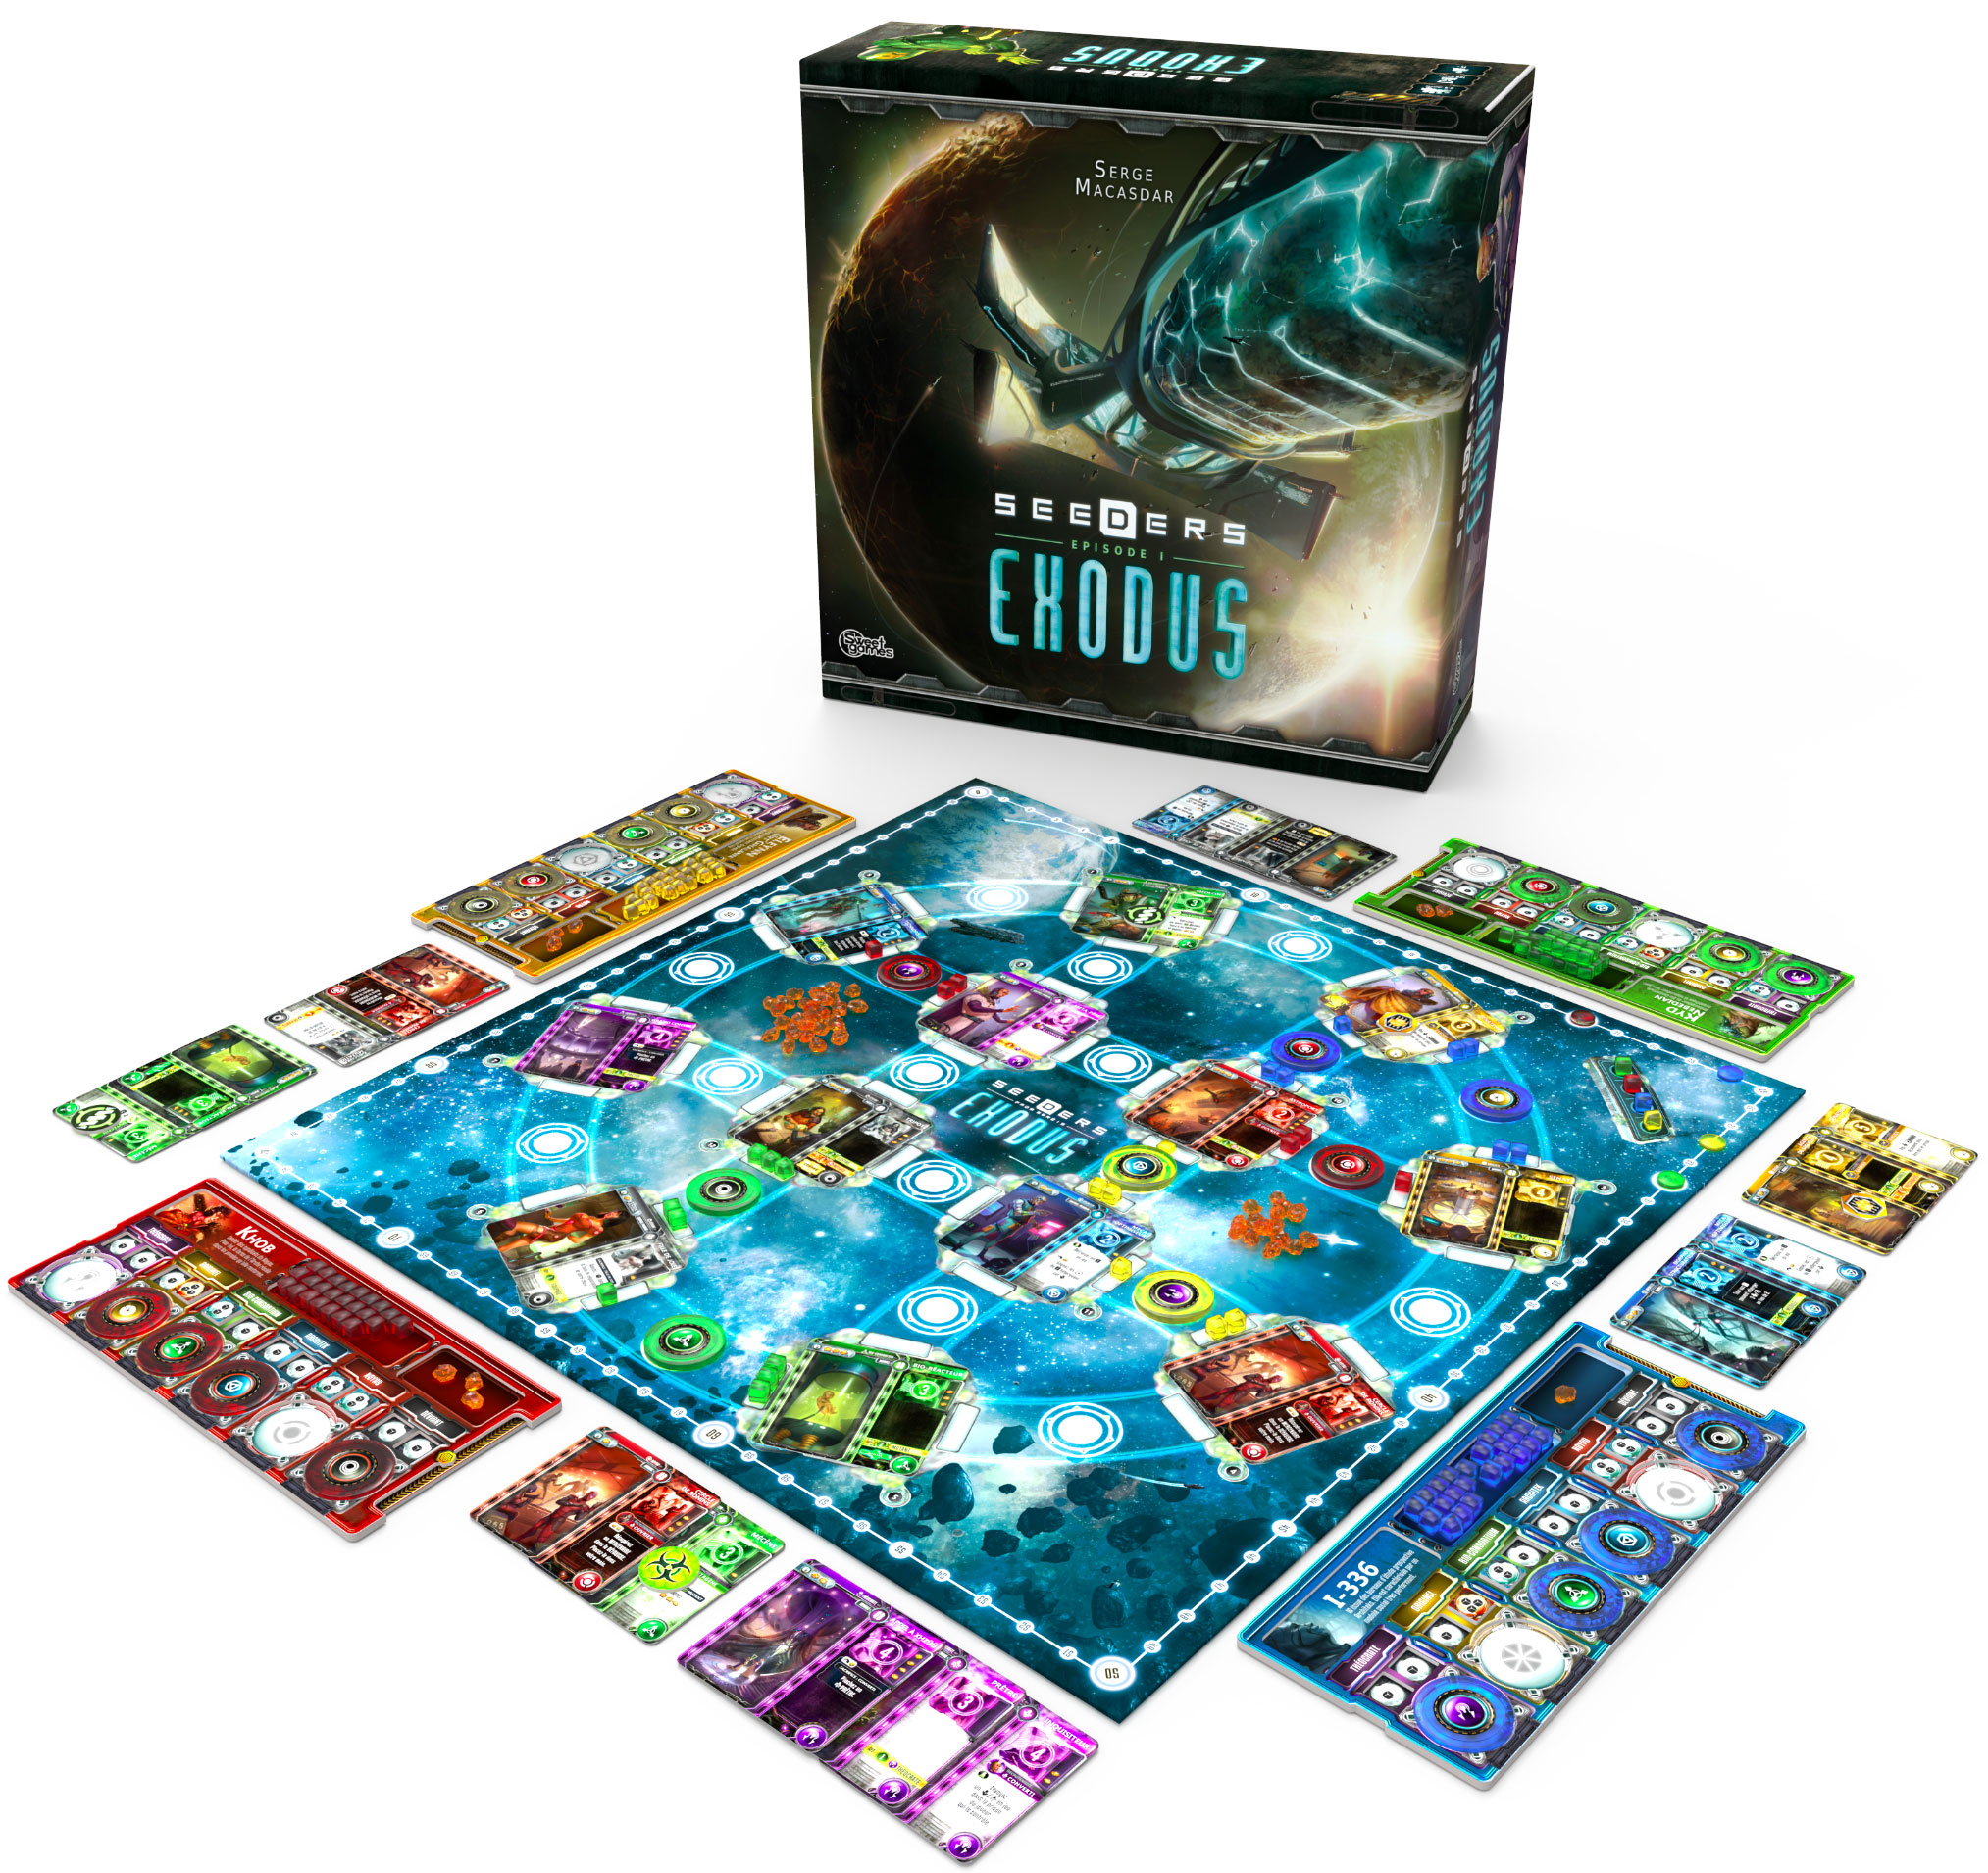 Seeders Series 1:Exodus startet im April in der Spieleschmiede